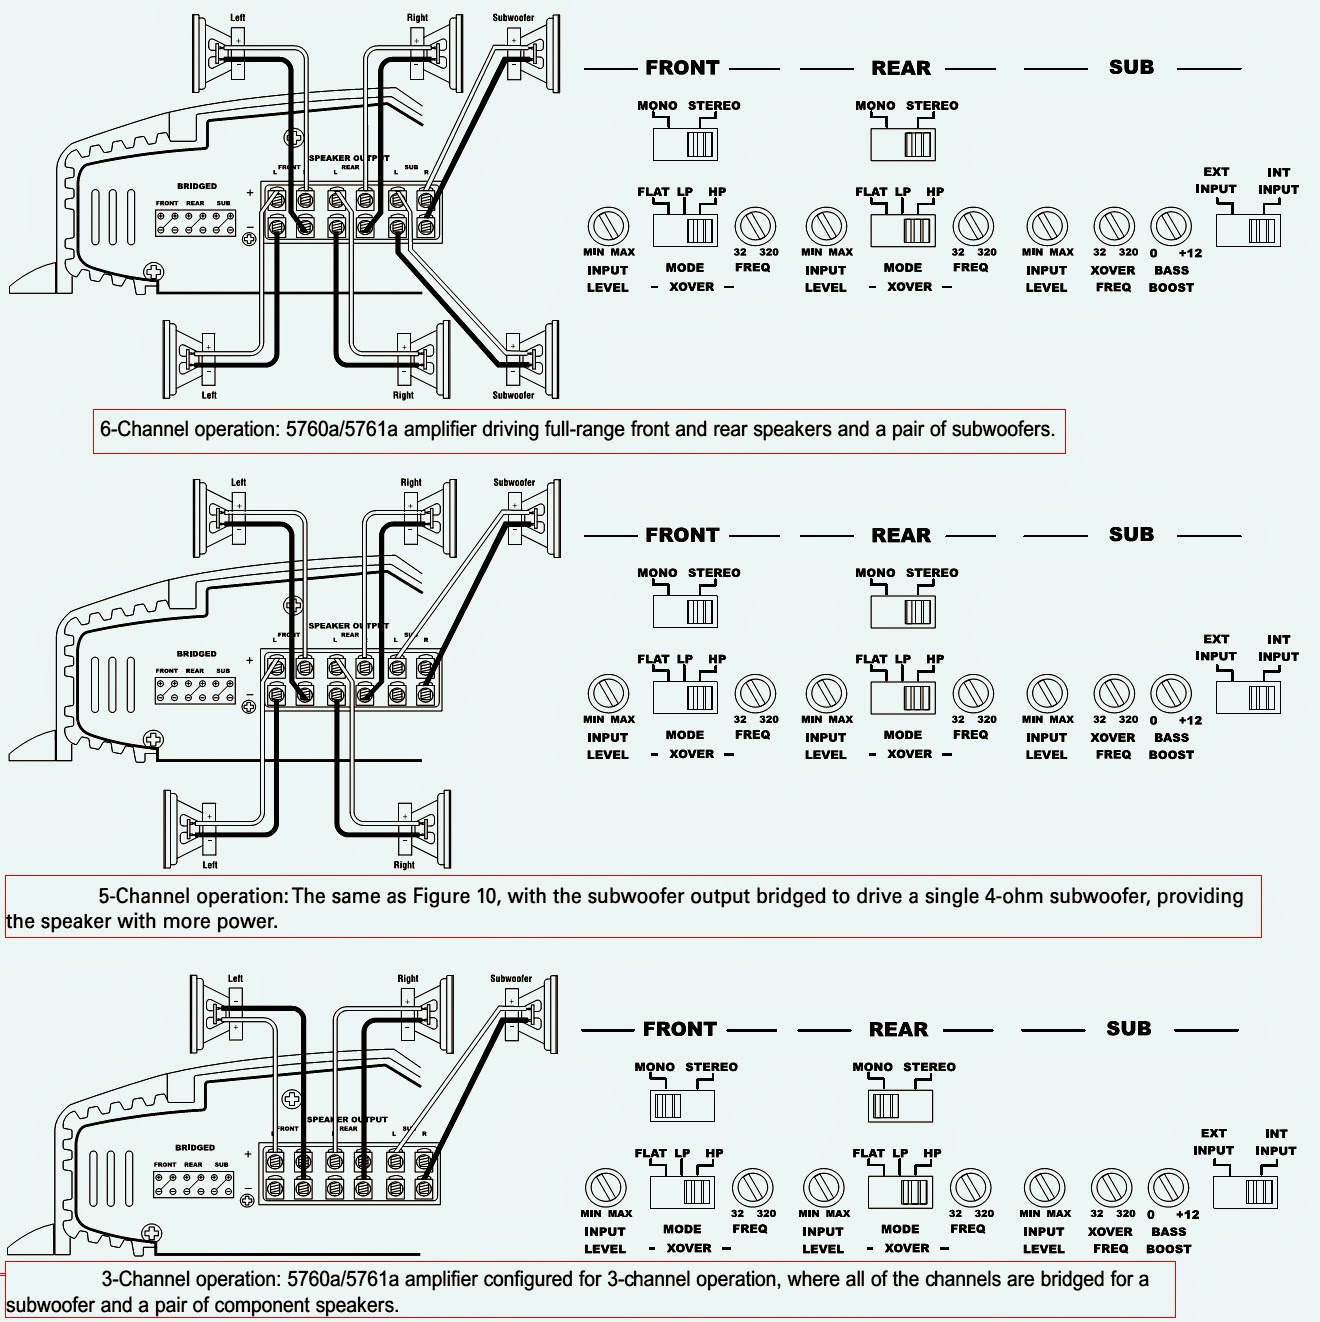 Infinity Reference 1062w Wiring Diagram Free Download Mr400692 Best 10 Inch Subwoofer In May 2018